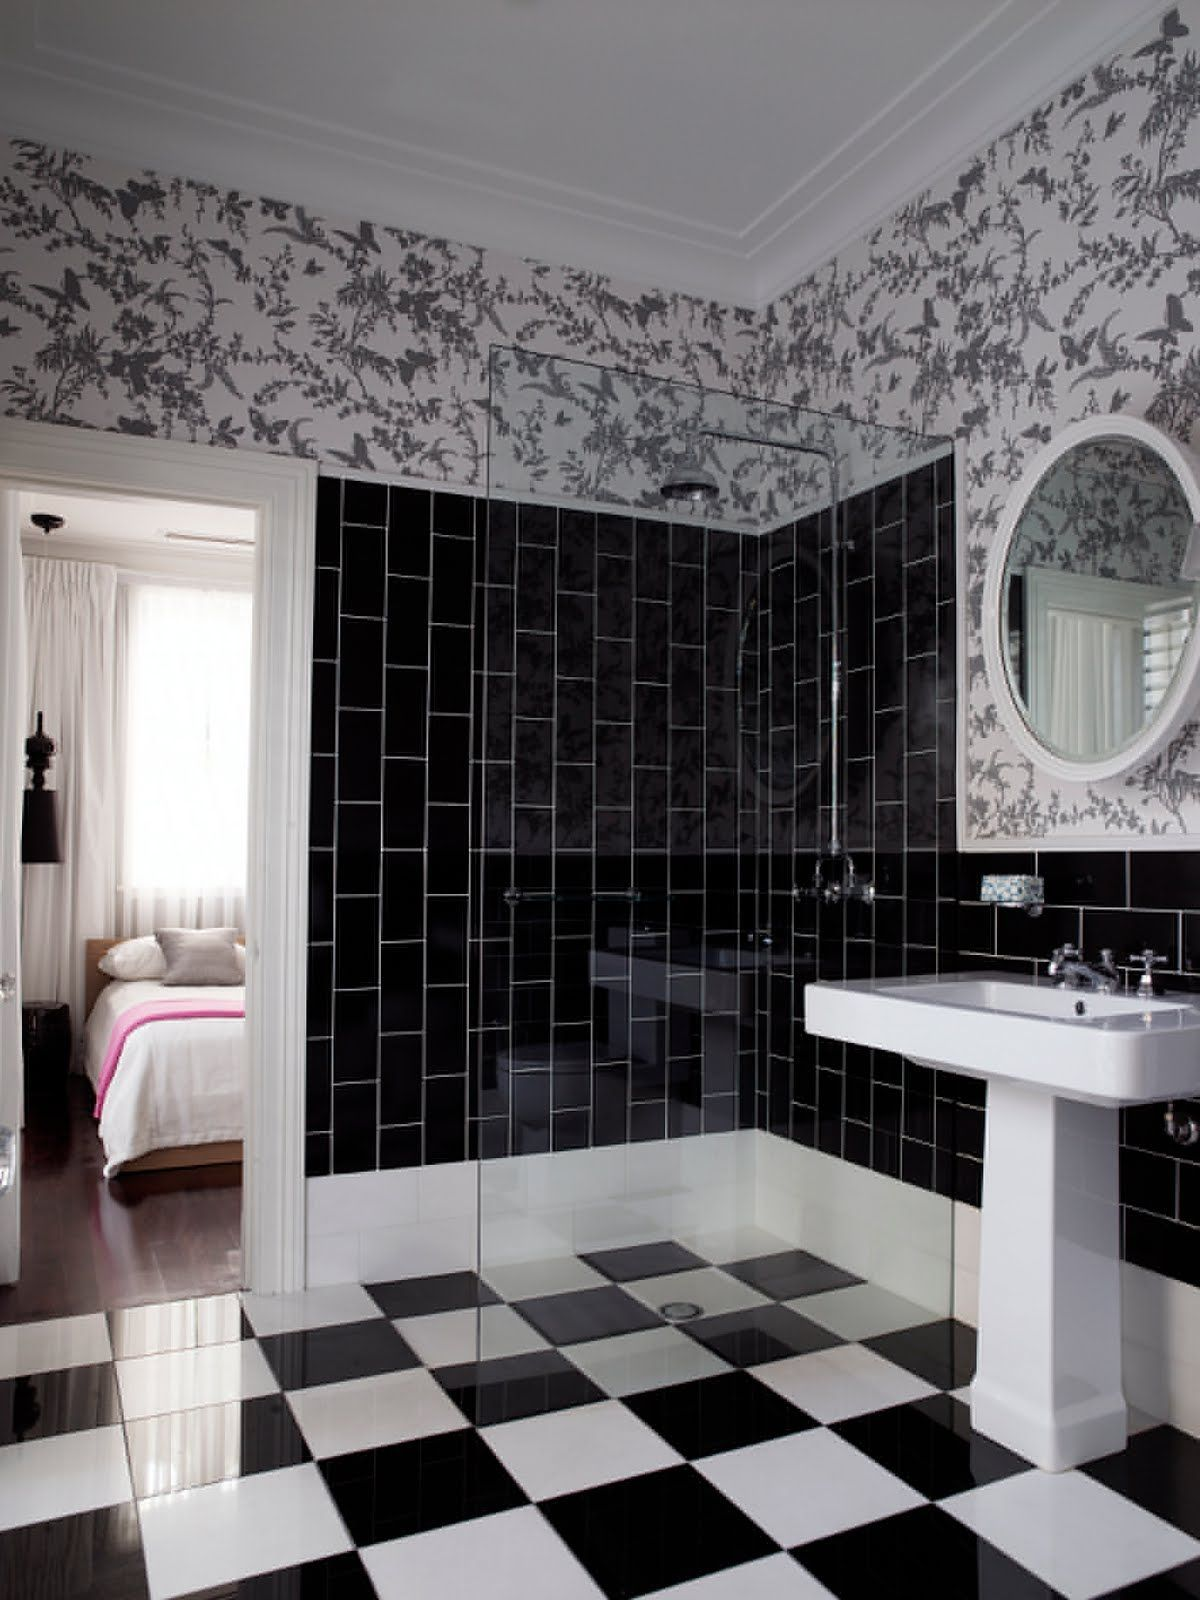 Black And White Bathroom Wall Tile Ideas Check This Useful Article By Going To The Link At The